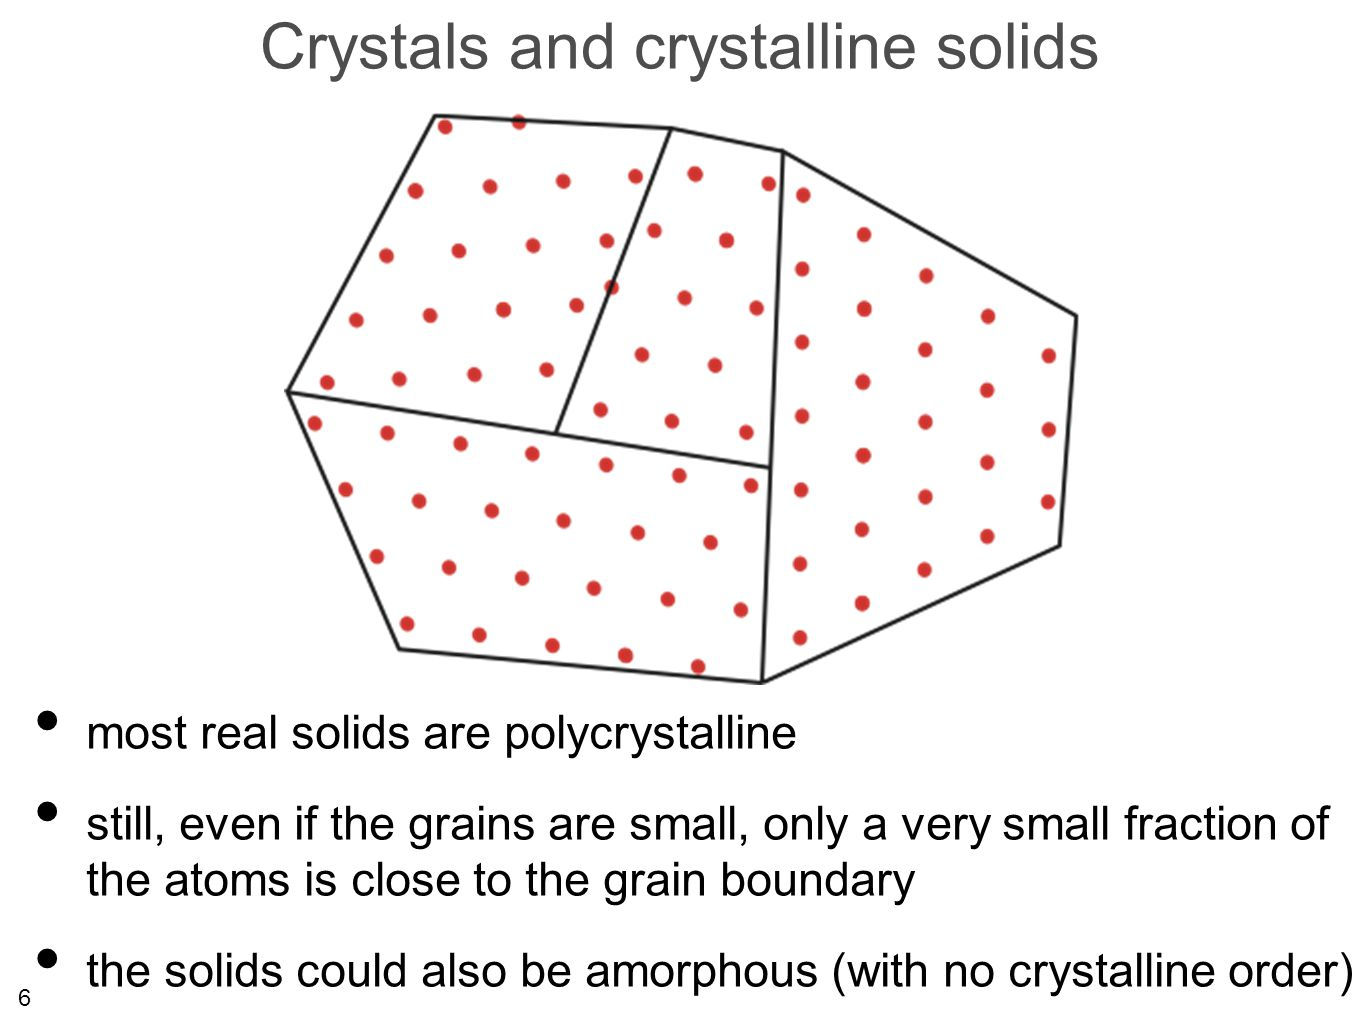 6 Crystals and crystalline solids most real solids are polycrystalline still, even if the grains are small, only a very small fraction of the atoms is close to the grain boundary the solids could also be amorphous (with no crystalline order)